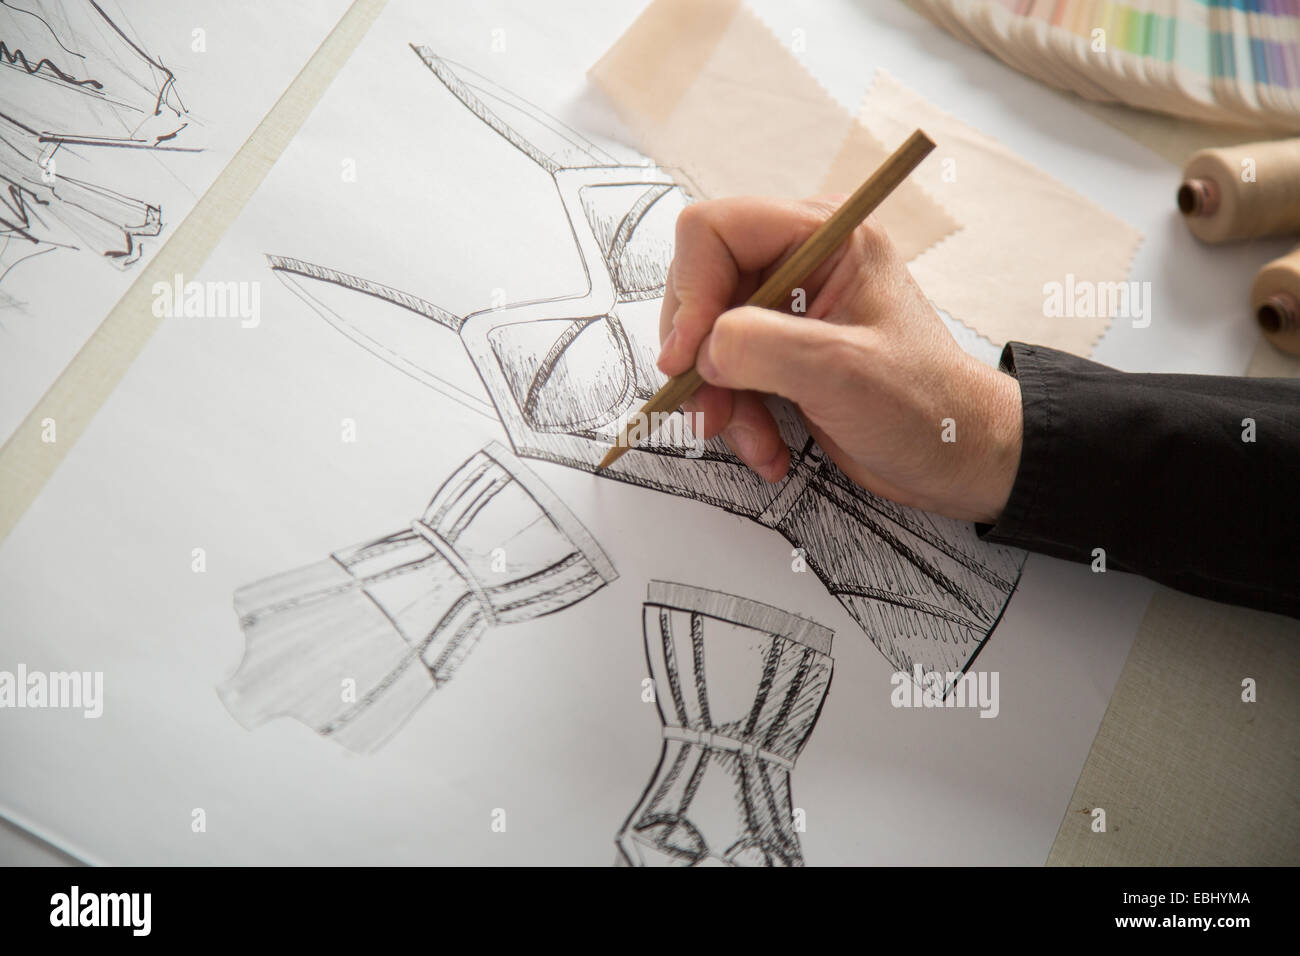 fashion designers, working in progress on tailor table - Stock Image